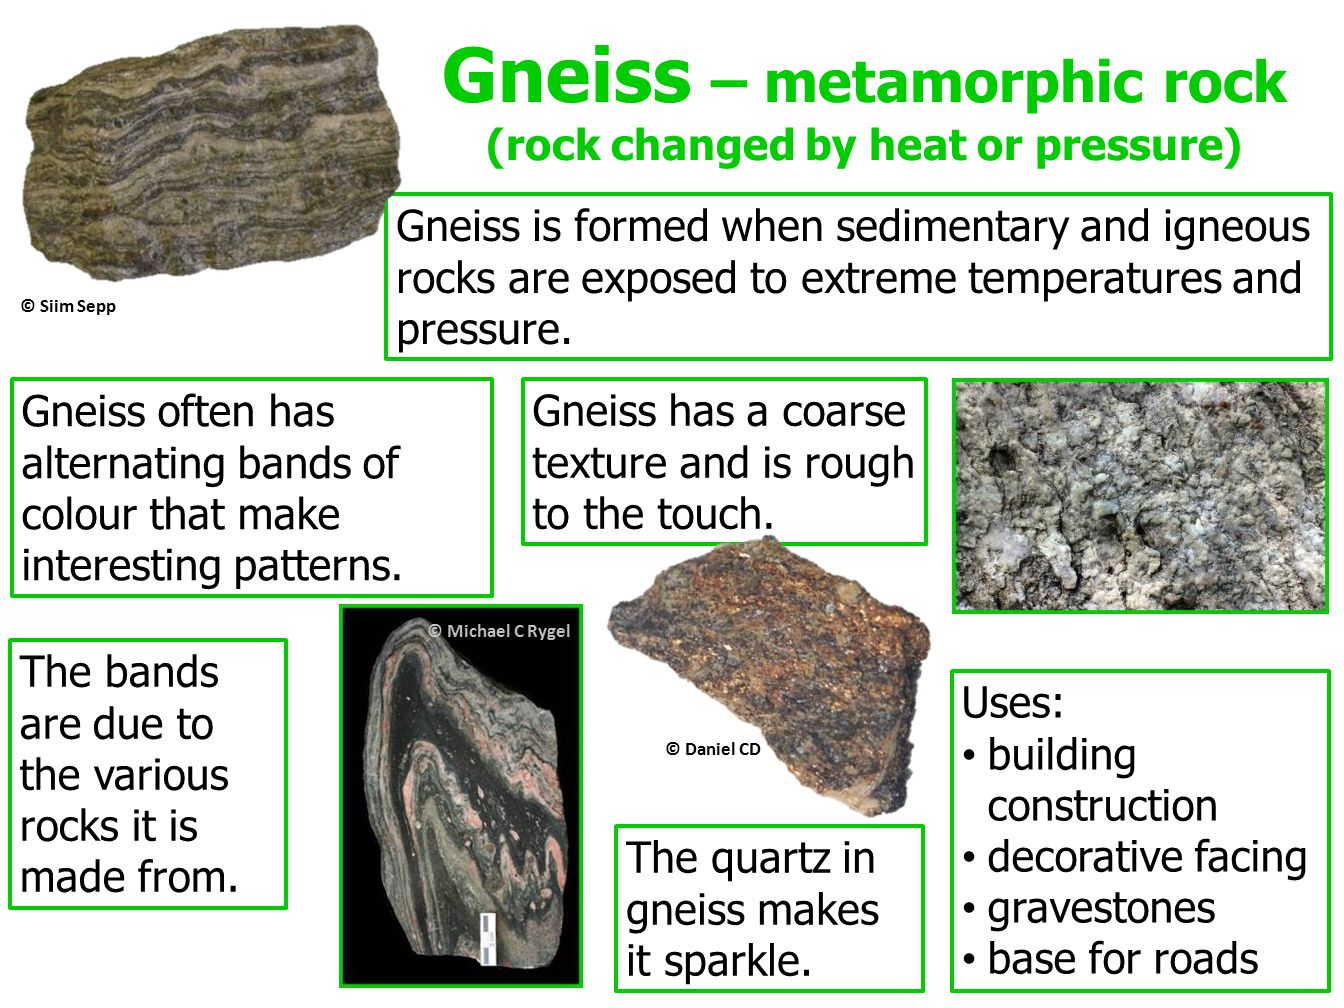 Gneiss – metamorphic rock (rock changed by heat or pressure) Gneiss is formed when sedimentary and igneous rocks are exposed to extreme temperatures and pressure.